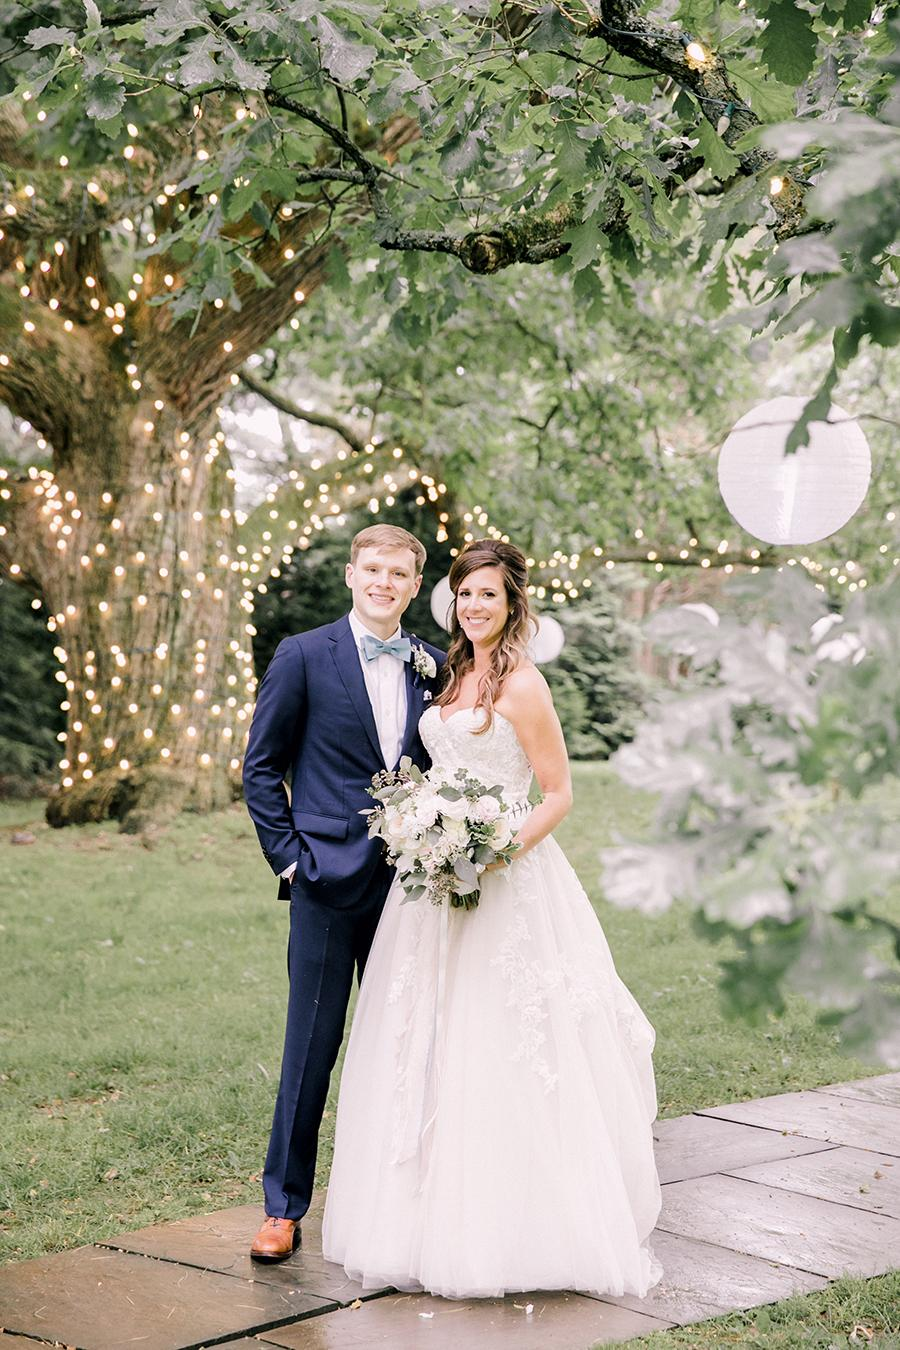 A Romantic Fairytale Wedding At Aldie Mansion Emily Wren Photography Philly In Love Philadelphia Wedding Blog Venues Vendors